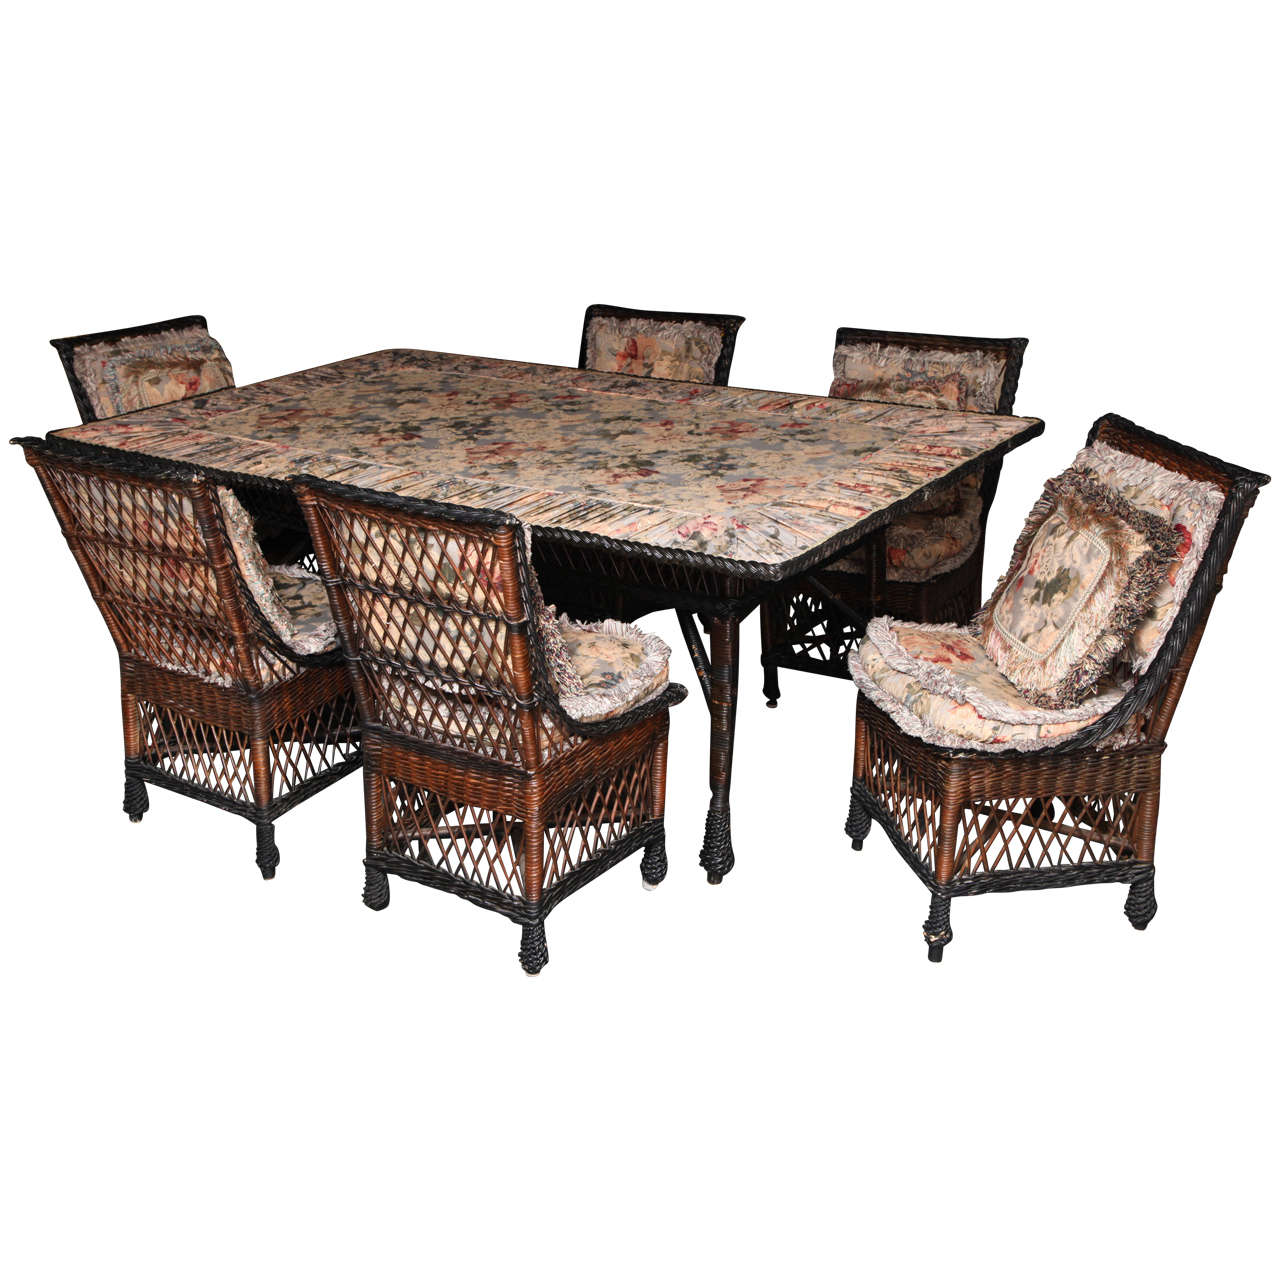 wicker chairs for sale posture chair uk antique bar harbor dining table and set of